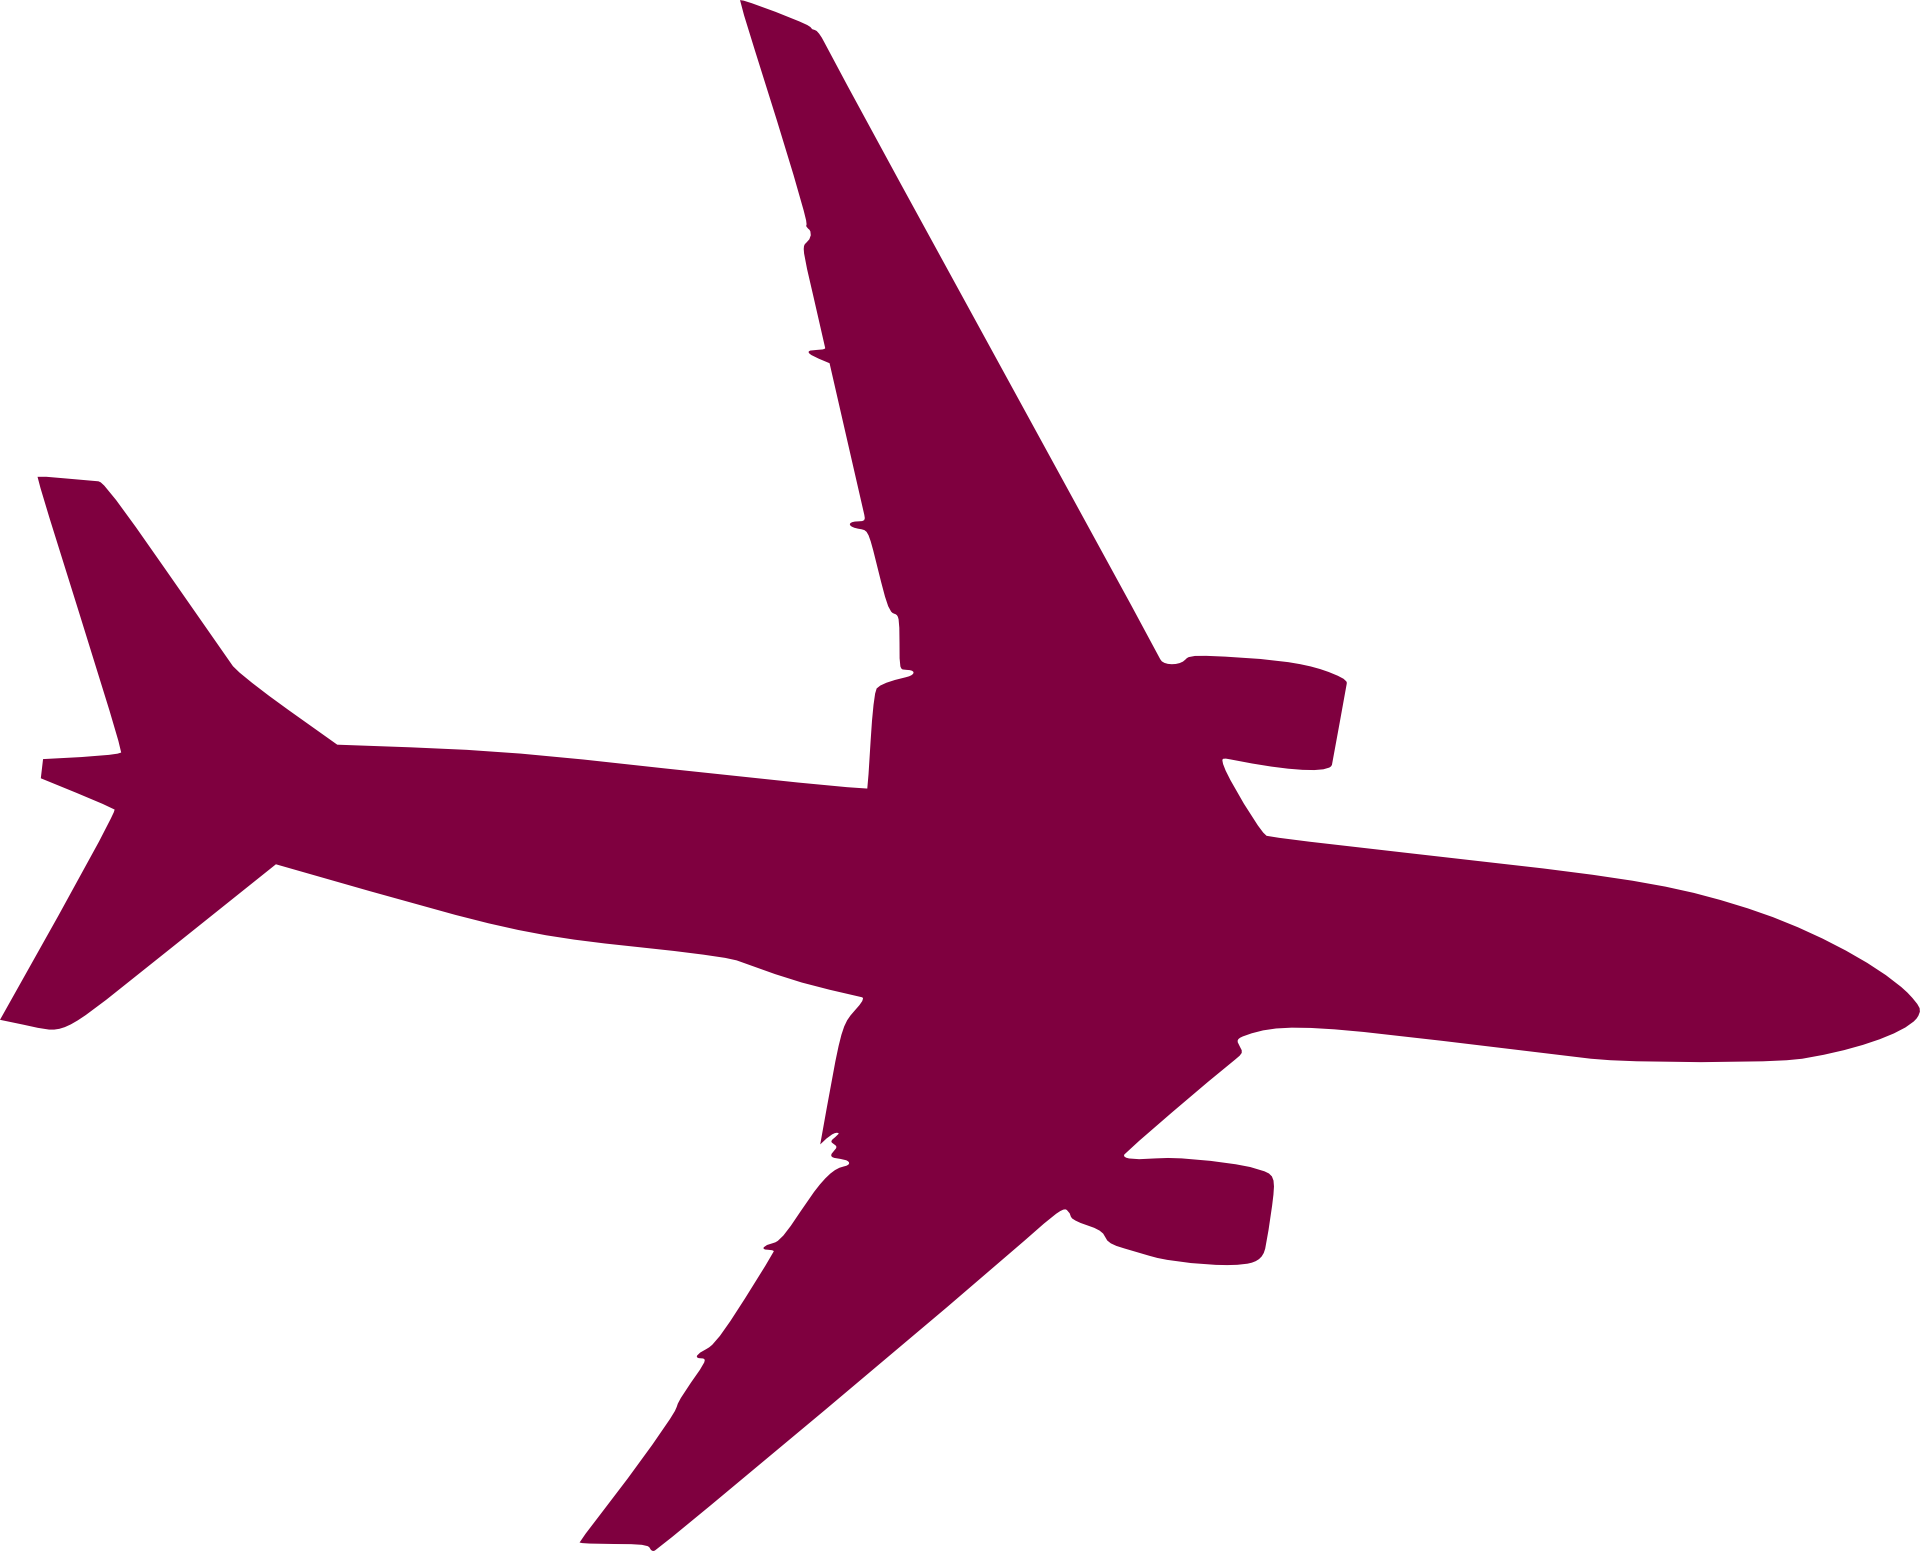 Aircraft silhouette at getdrawings. Jet clipart powerpoint